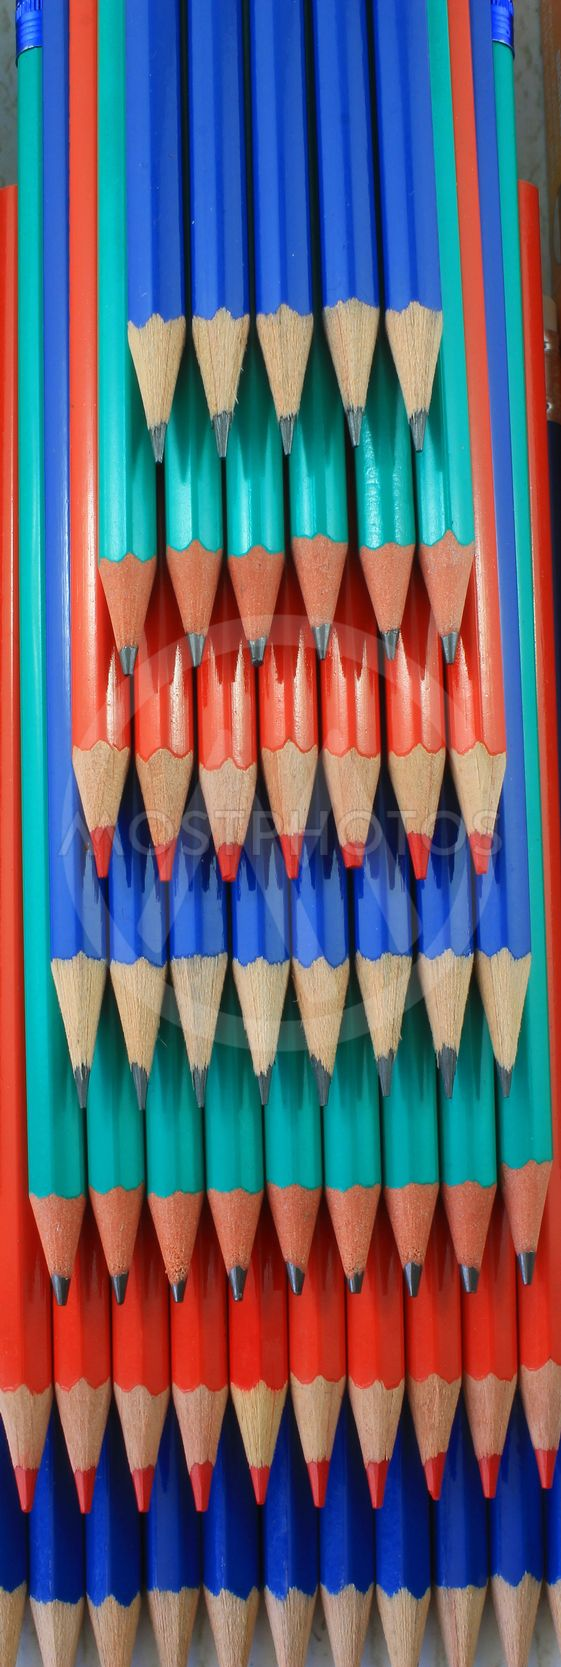 Stacked Colored Pencils